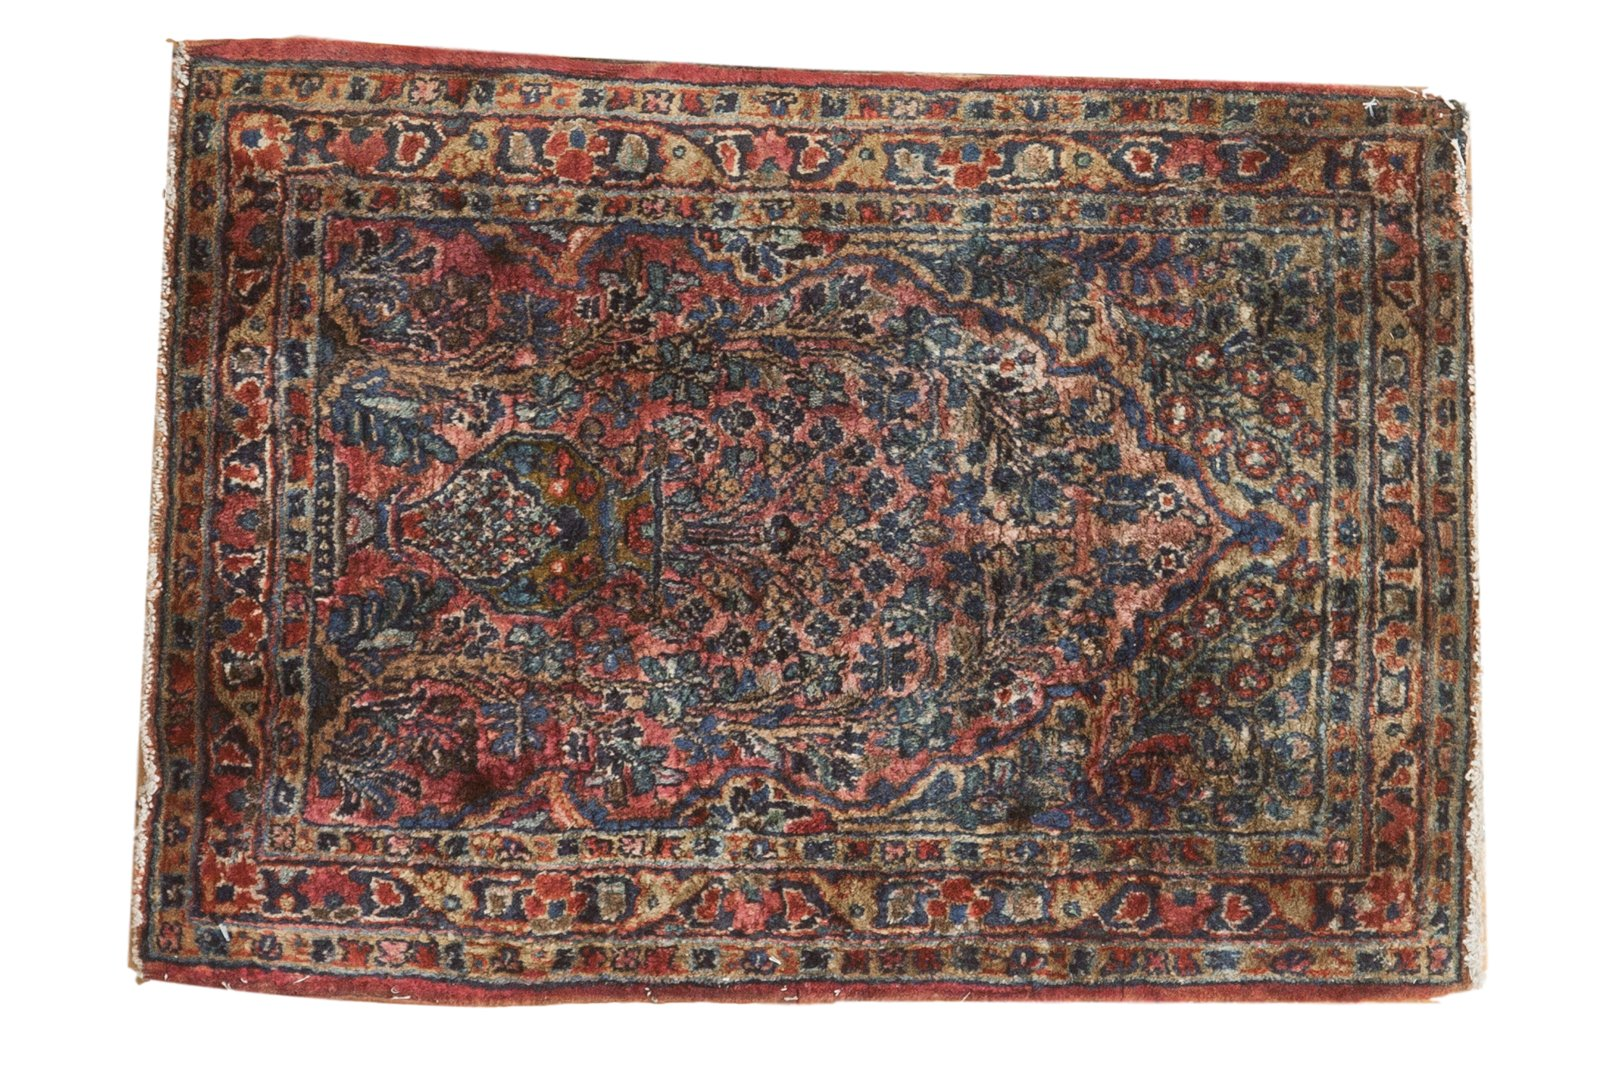 Responsible Antique 1920's Persian Sarouk Rug Carpet 4 Ft 2 Inches By 2 Foot 2 Inches Antiques